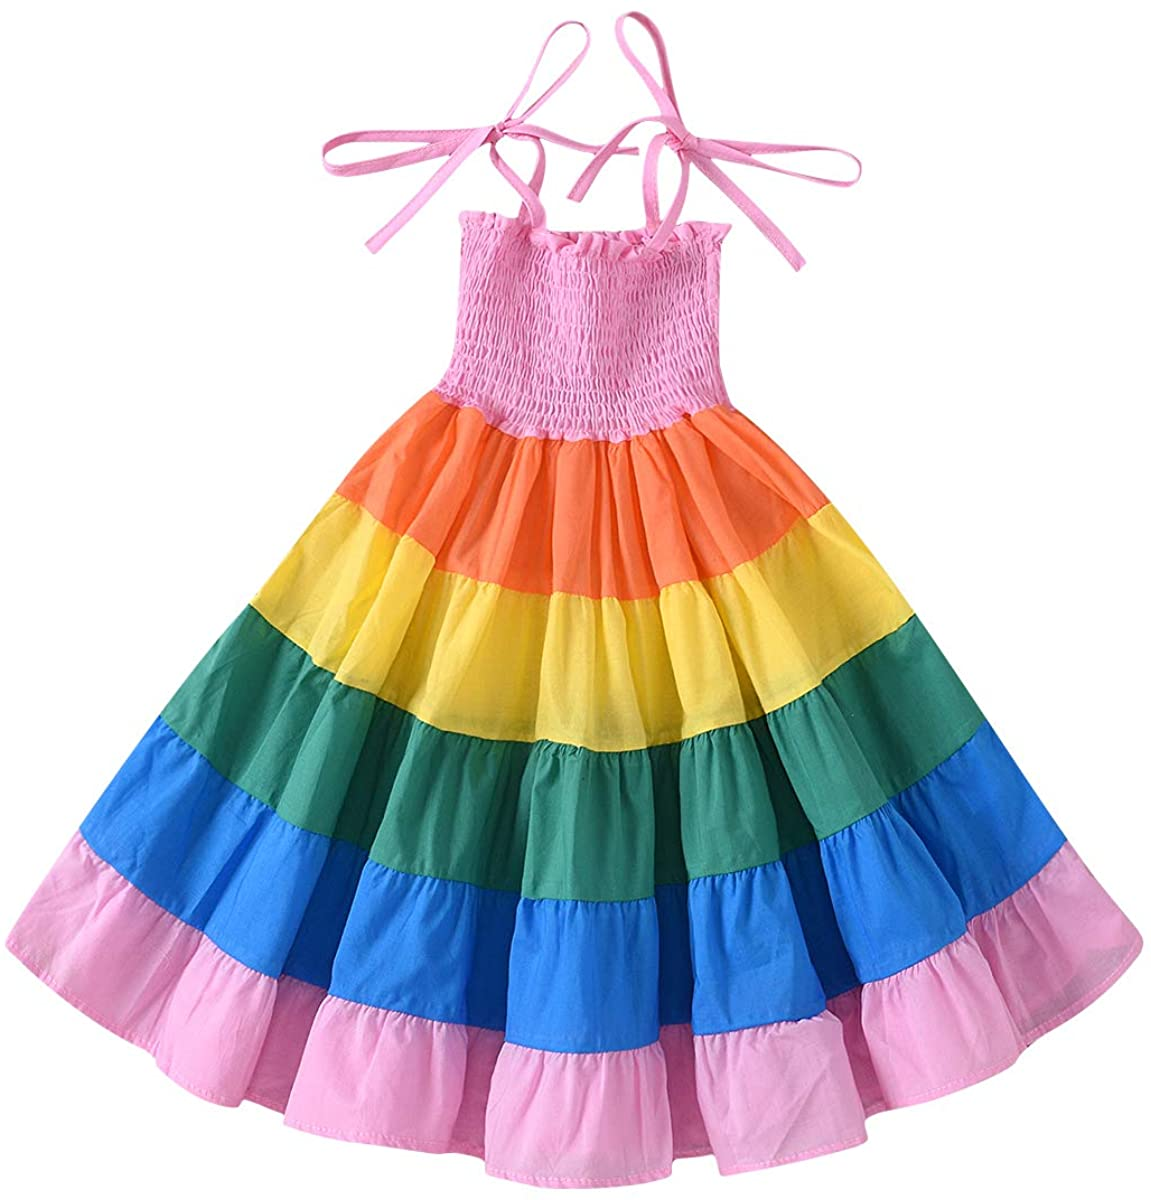 Baby Girls Rainbow Dress Toddler Princess Sleeveless Halter Beach Tutu Sundress